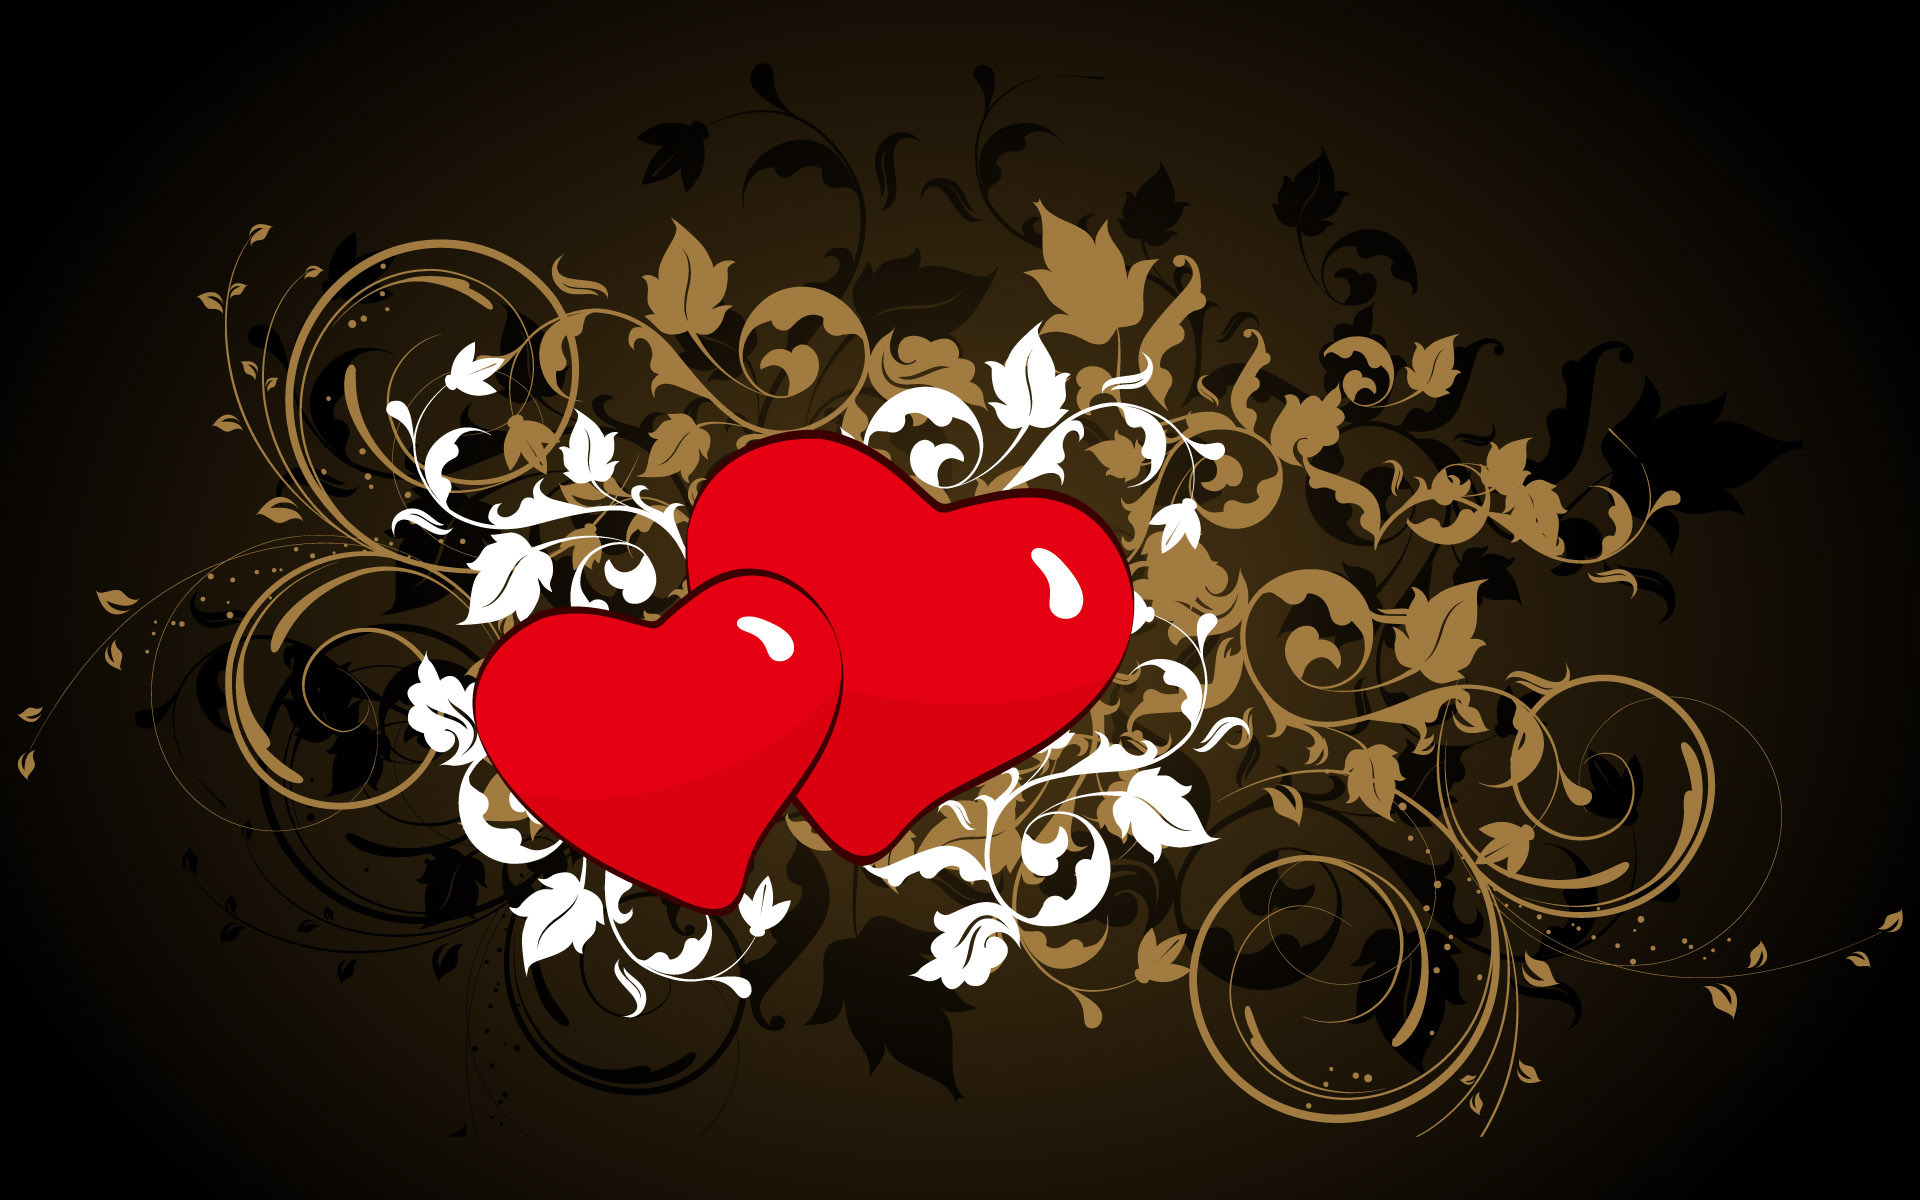 Love Wallpaper Hd Full Size : Love Wallpaper - Love Wallpaper (4187474) - Fanpop